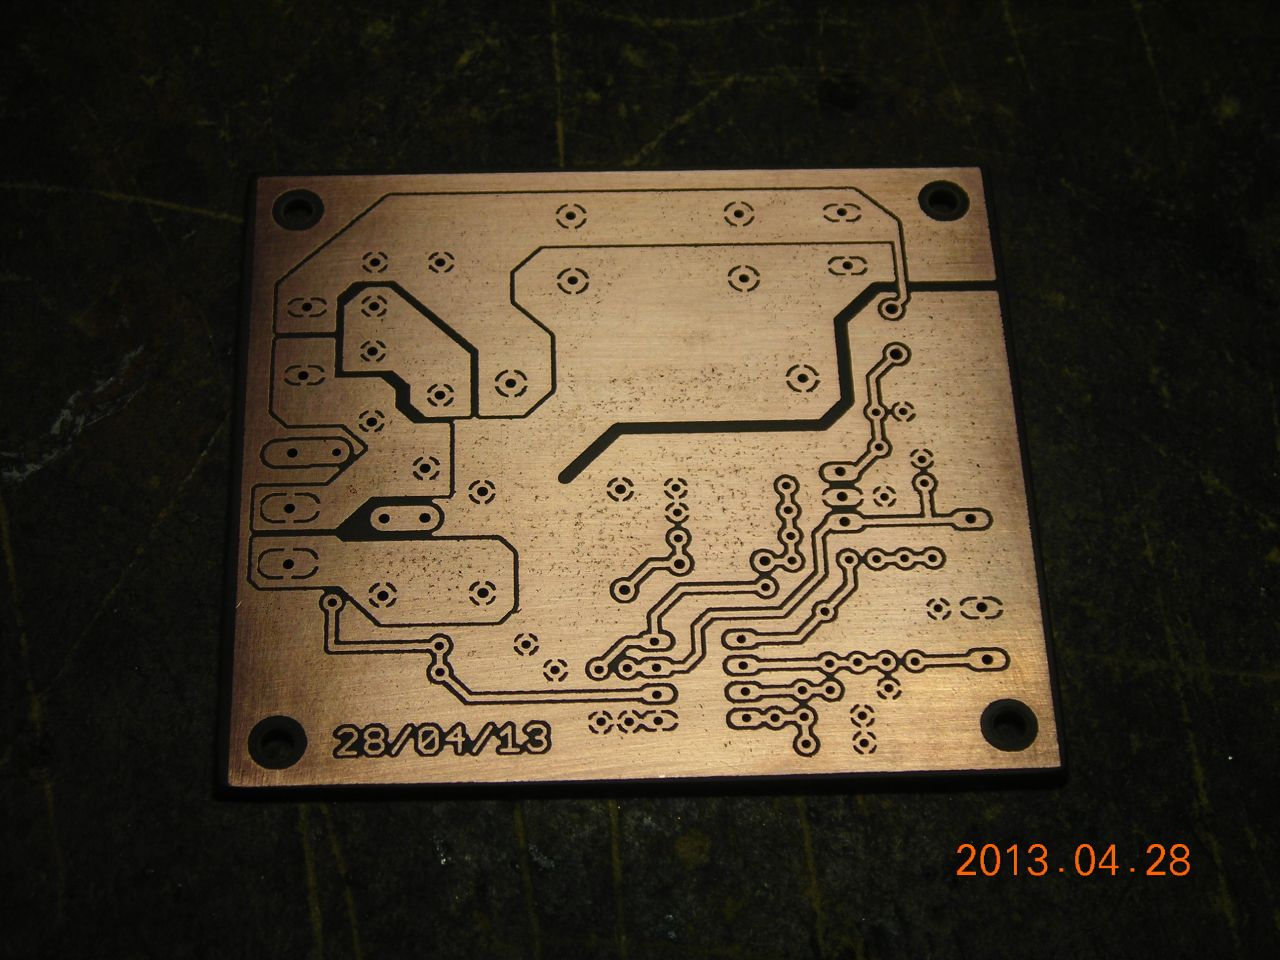 Making Pcbs Plain Copperclad Fibreglass Circuit Board Rapid Online Brightened Up With Abrasive Block